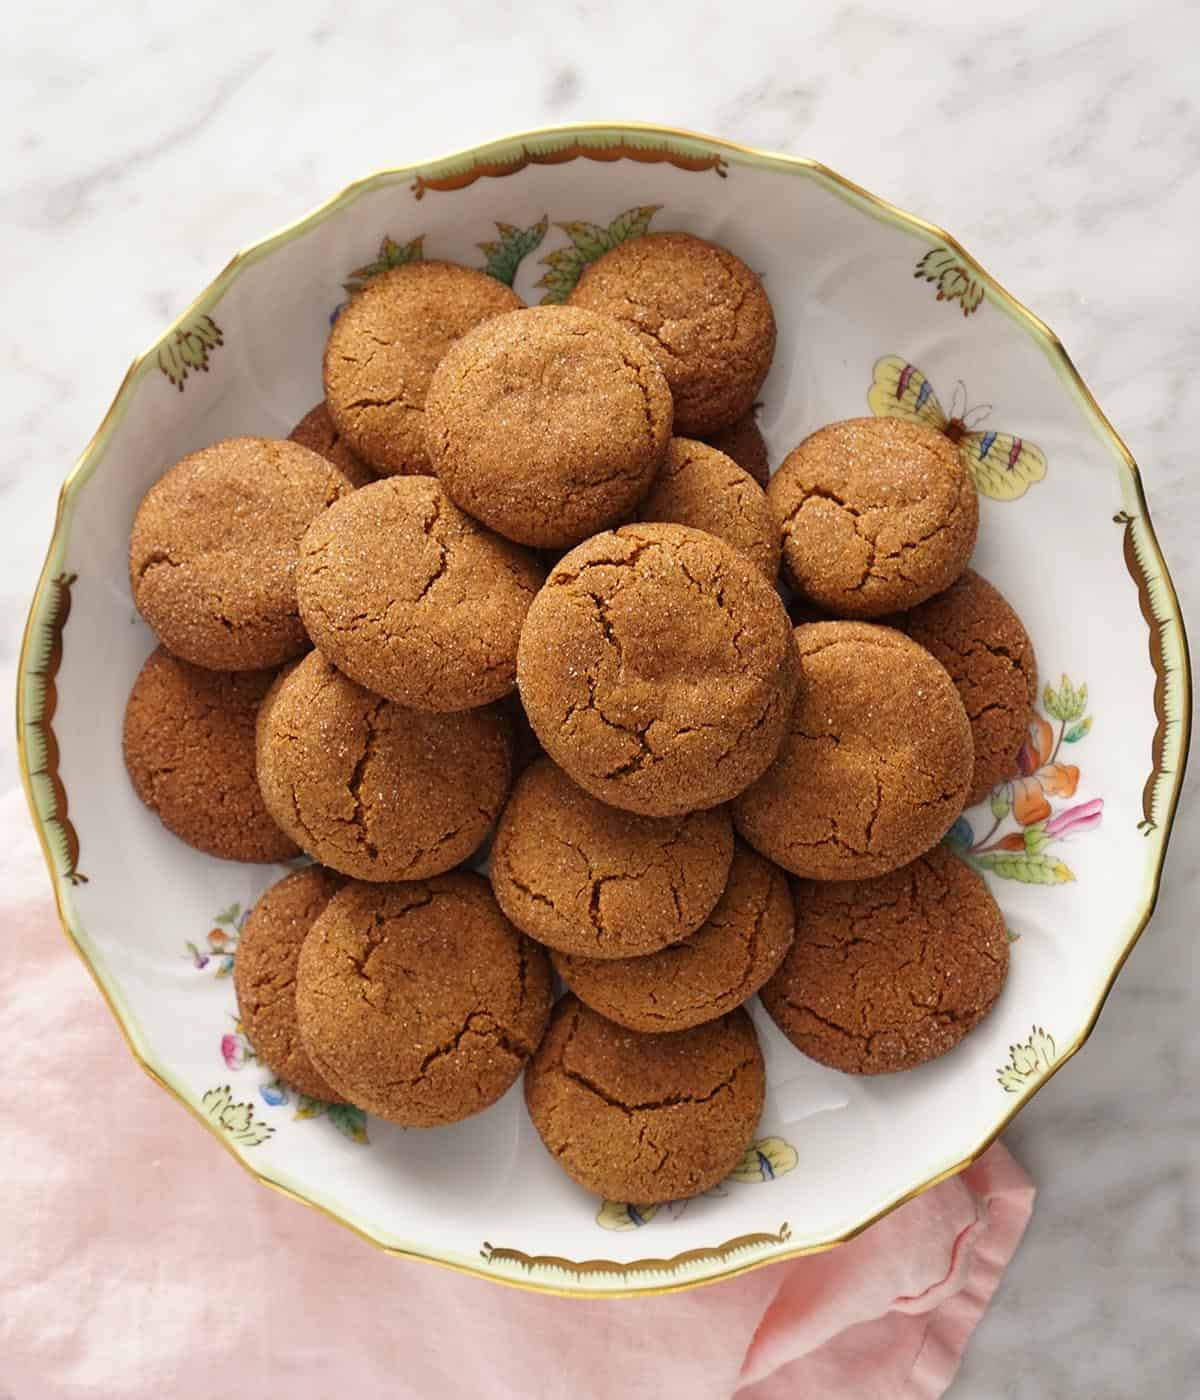 A porcelain bowl filled with gingersnap cookies.